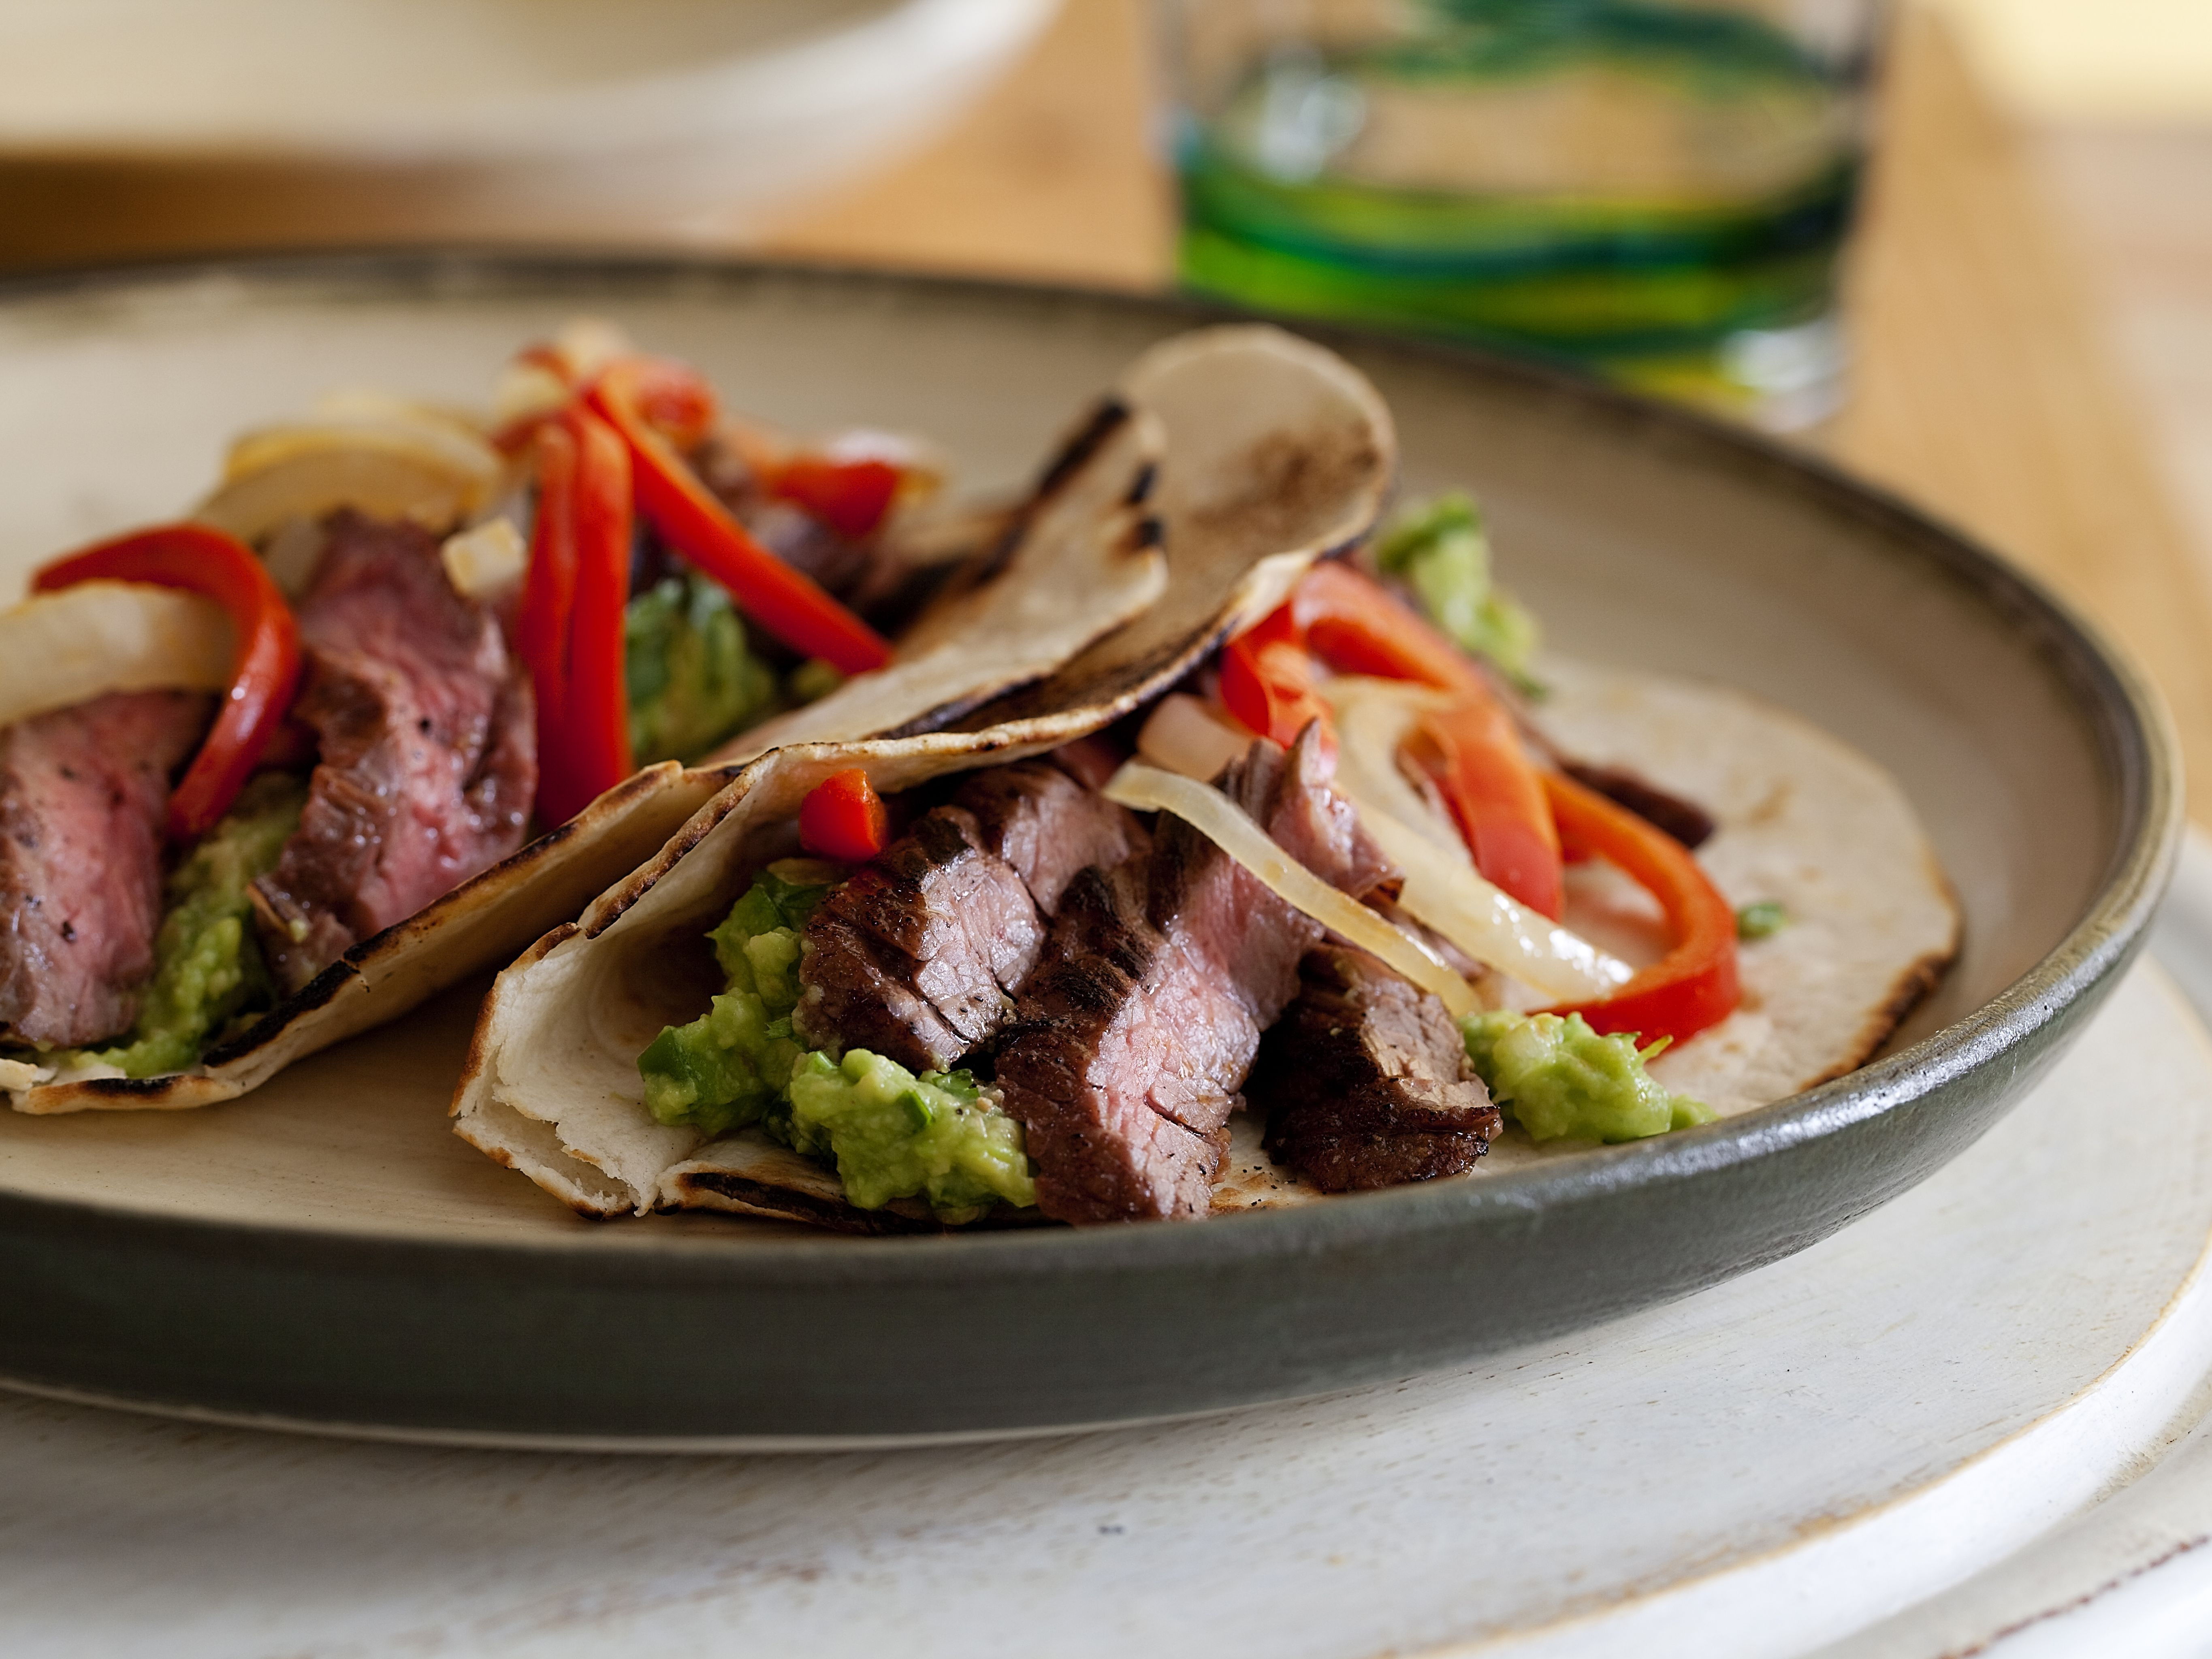 Fajitas #beeffajitamarinade Fantastic fajita marinade - have used it on flank steak as written in the recipe, but it's great on chicken, too! #steakfajitamarinade Fajitas #beeffajitamarinade Fantastic fajita marinade - have used it on flank steak as written in the recipe, but it's great on chicken, too! #beeffajitamarinade Fajitas #beeffajitamarinade Fantastic fajita marinade - have used it on flank steak as written in the recipe, but it's great on chicken, too! #steakfajitamarinade Fajitas #bee #beeffajitamarinade